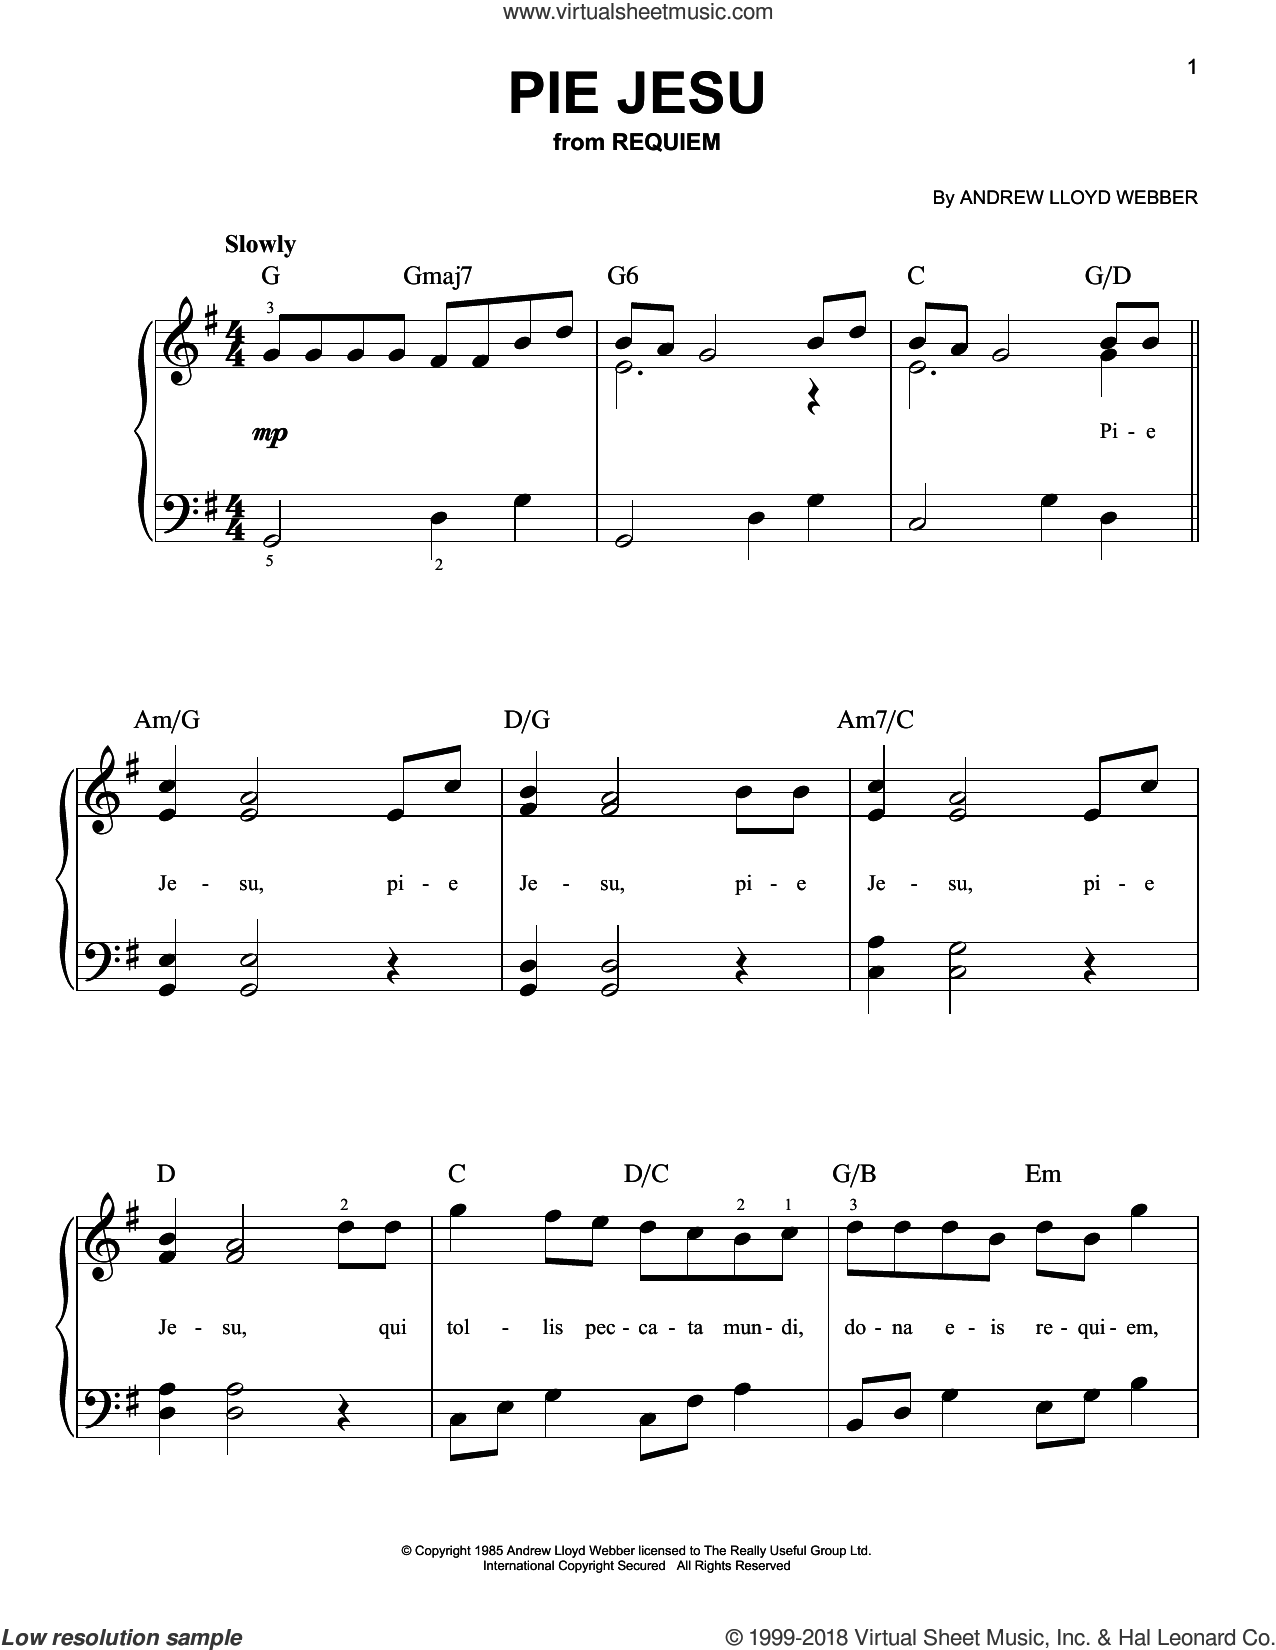 Pie Jesu sheet music for piano solo by Andrew Lloyd Webber